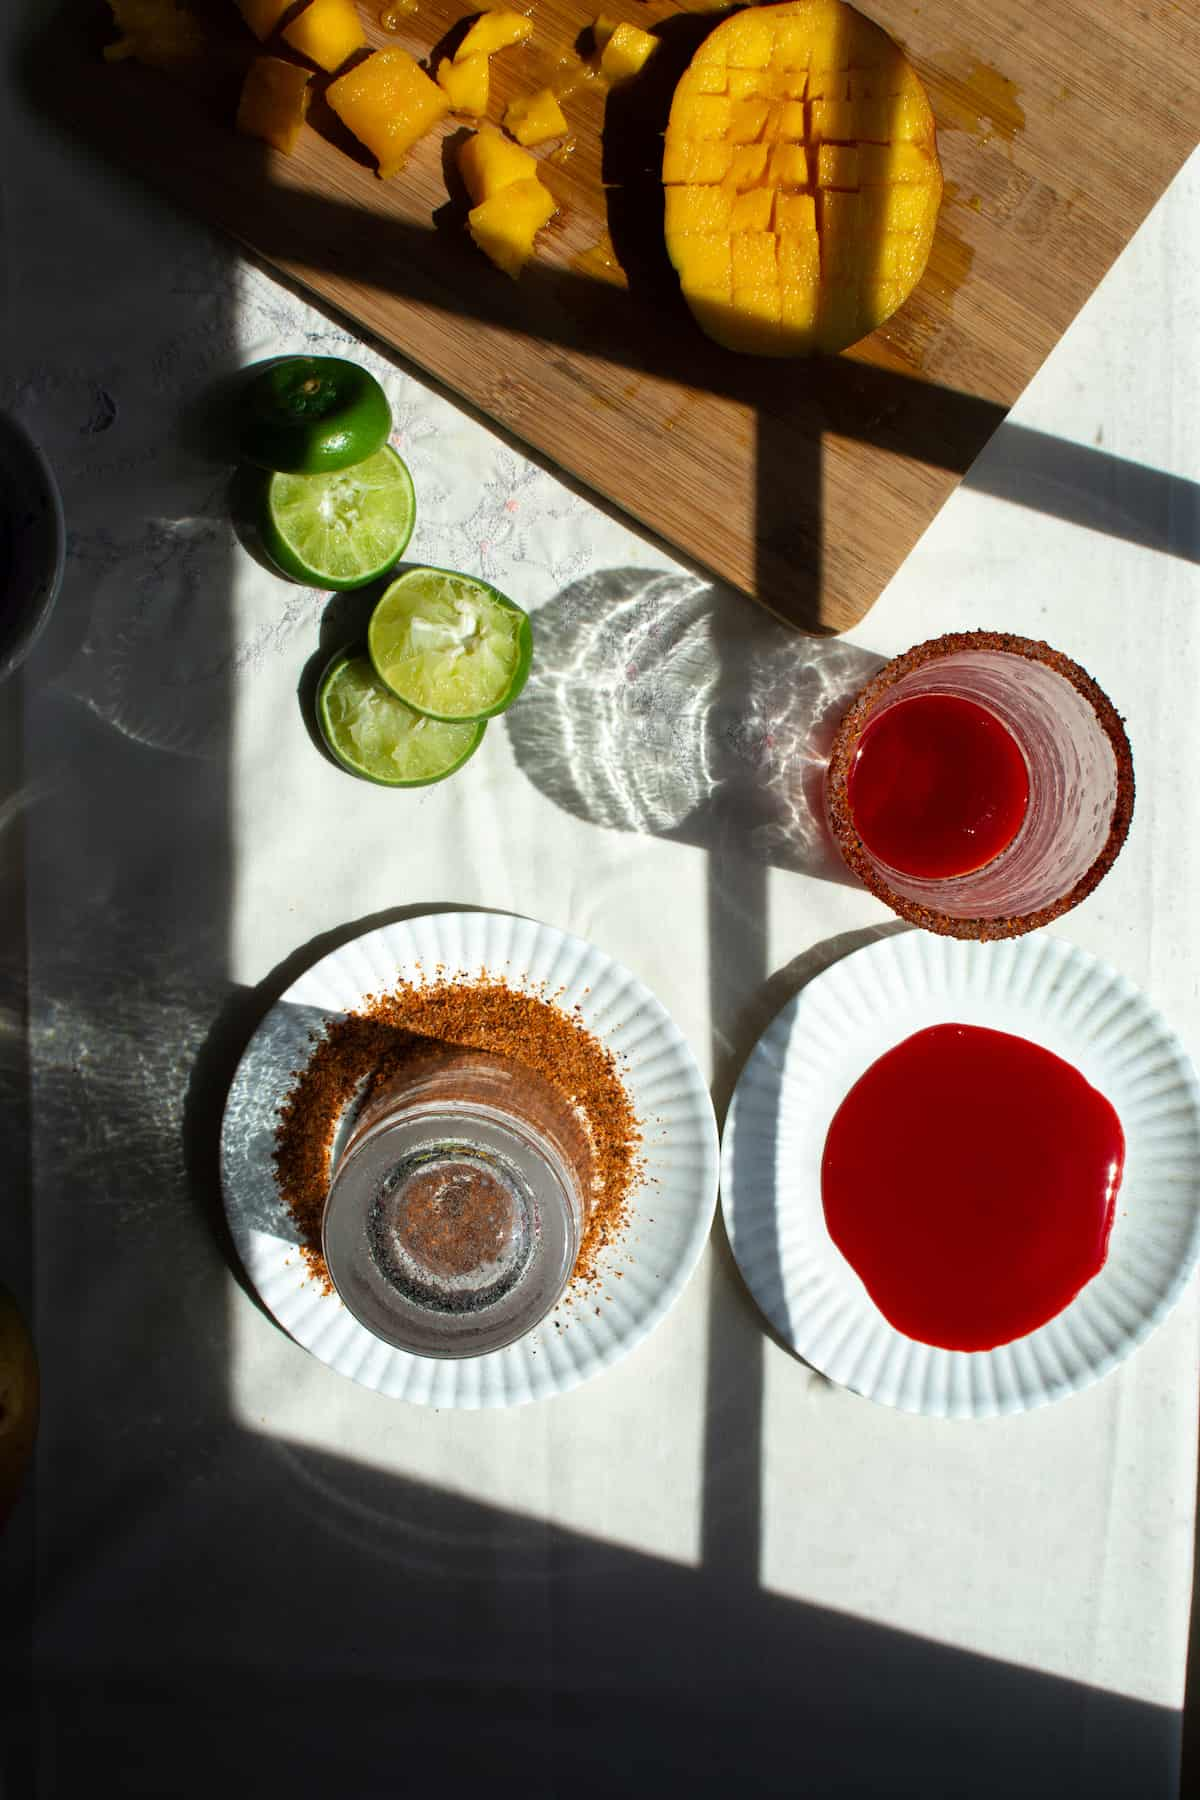 Overhead image of two small plates sitting on a white table with two glasses near them and lime halves.